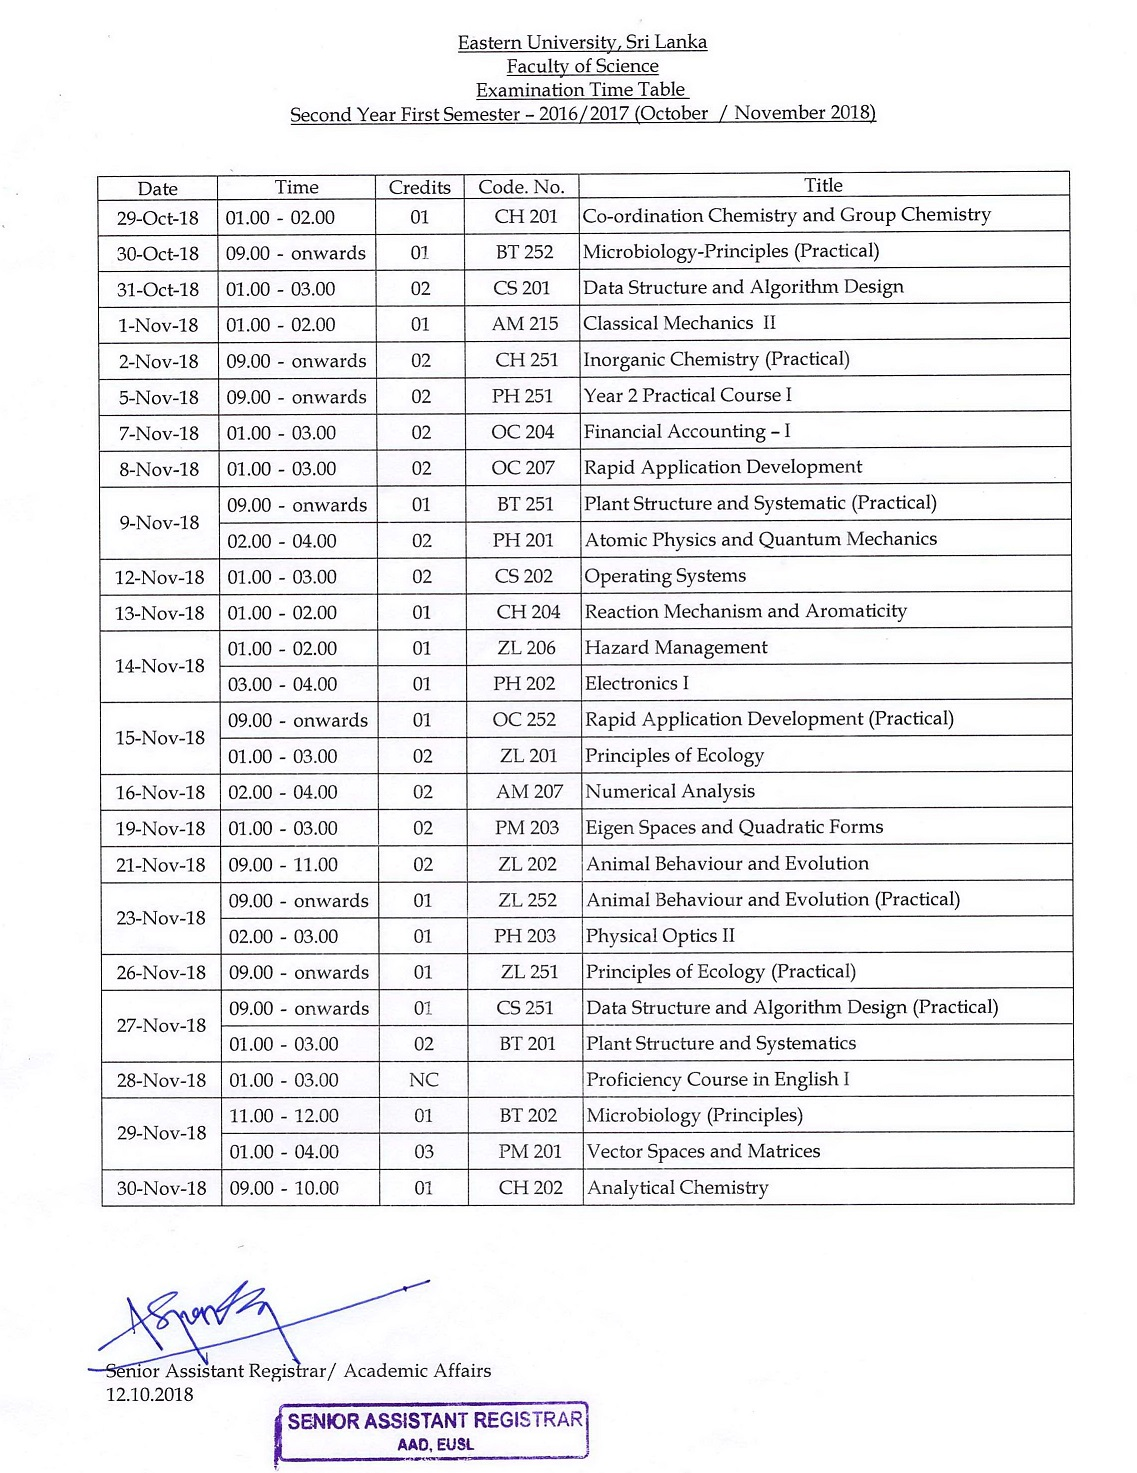 Y2S1 2016 2017 Exam Time Table